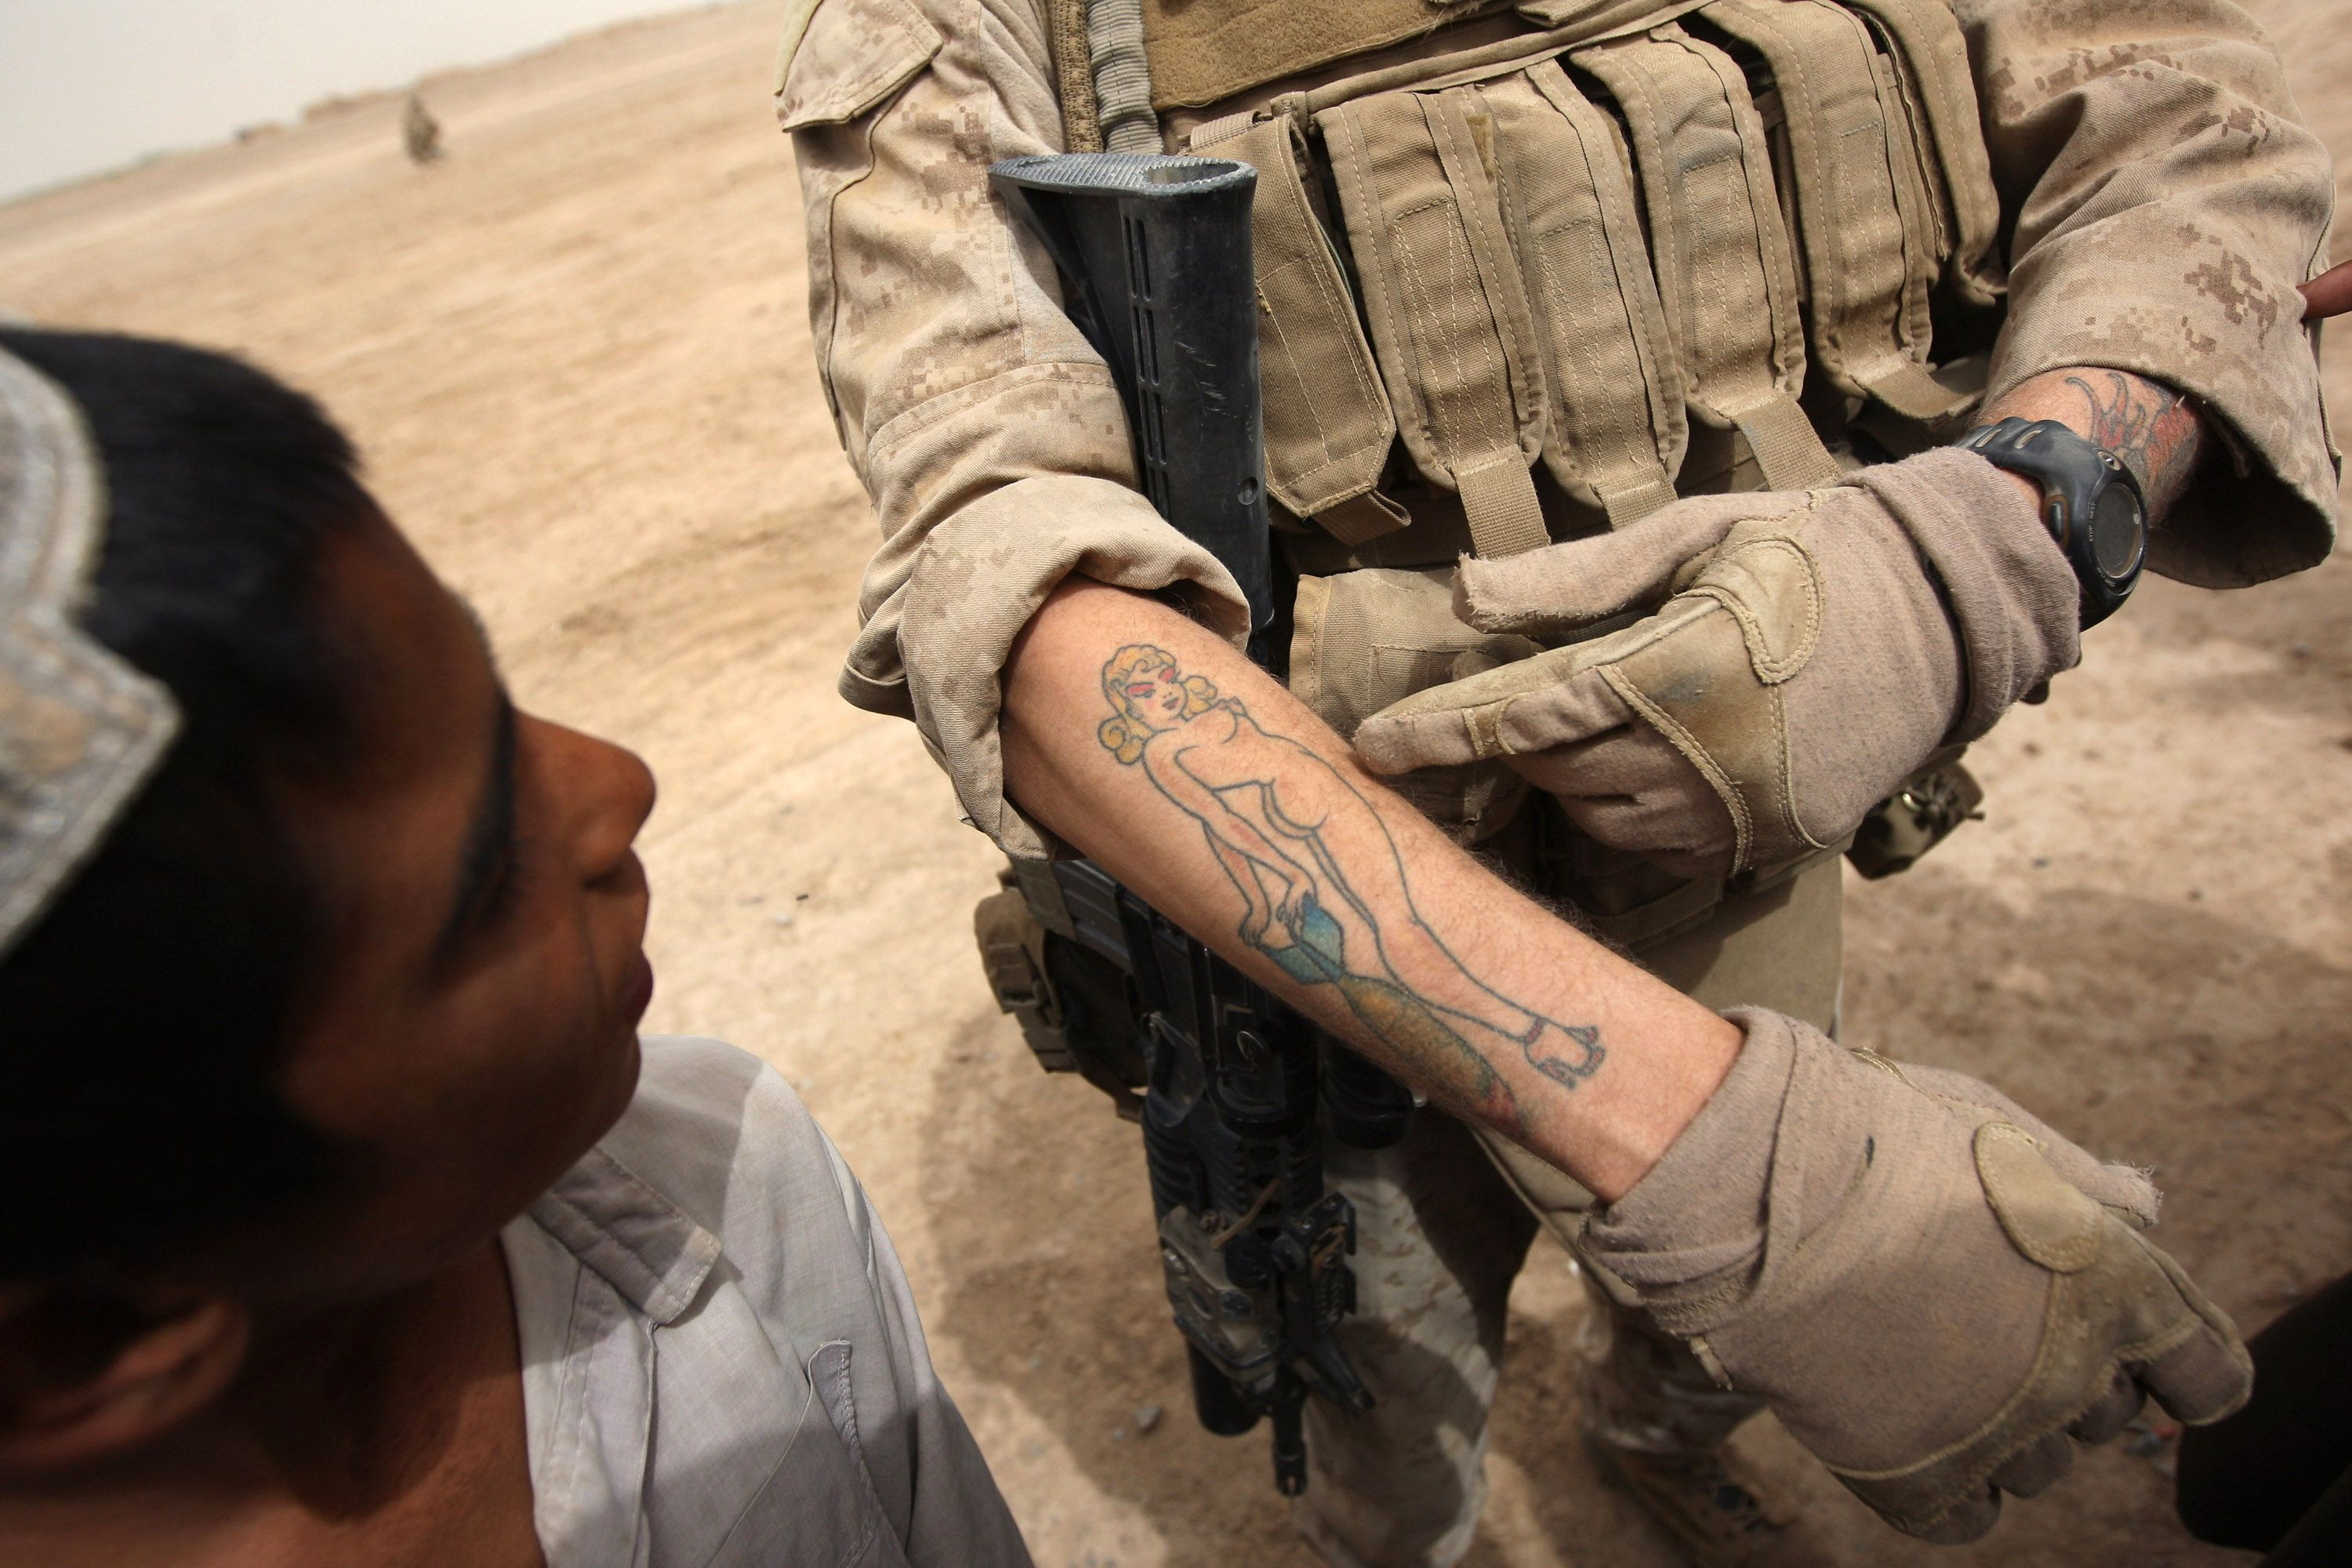 Marine corps tatoo body art policy for Army tattoo policy wrist